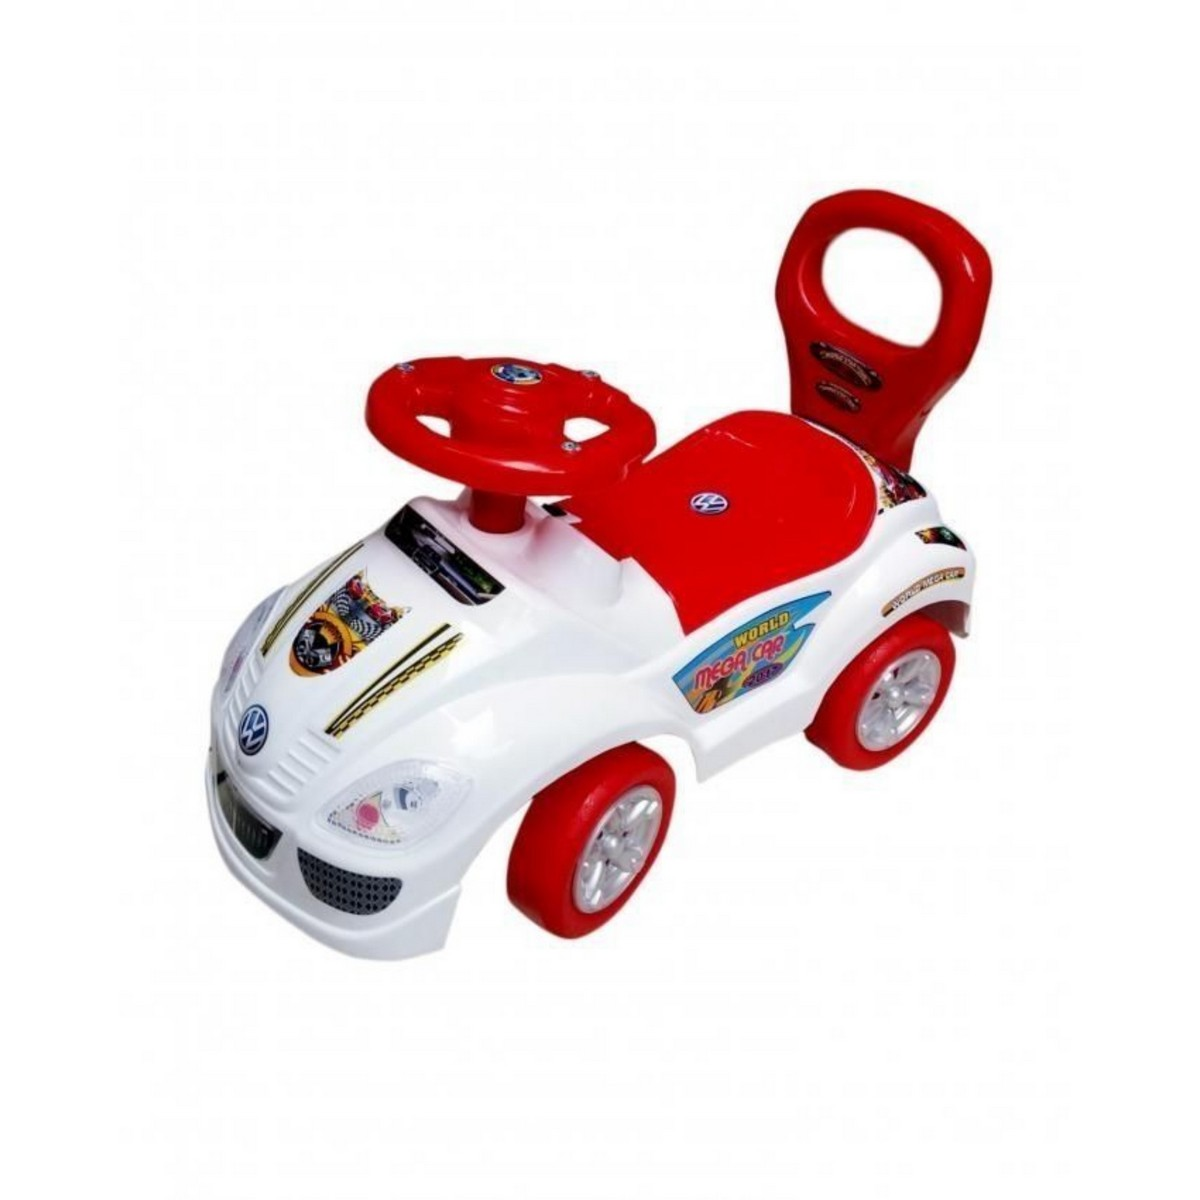 Mini Cab Push car with Music & Lights in Different Colors & Storage Box